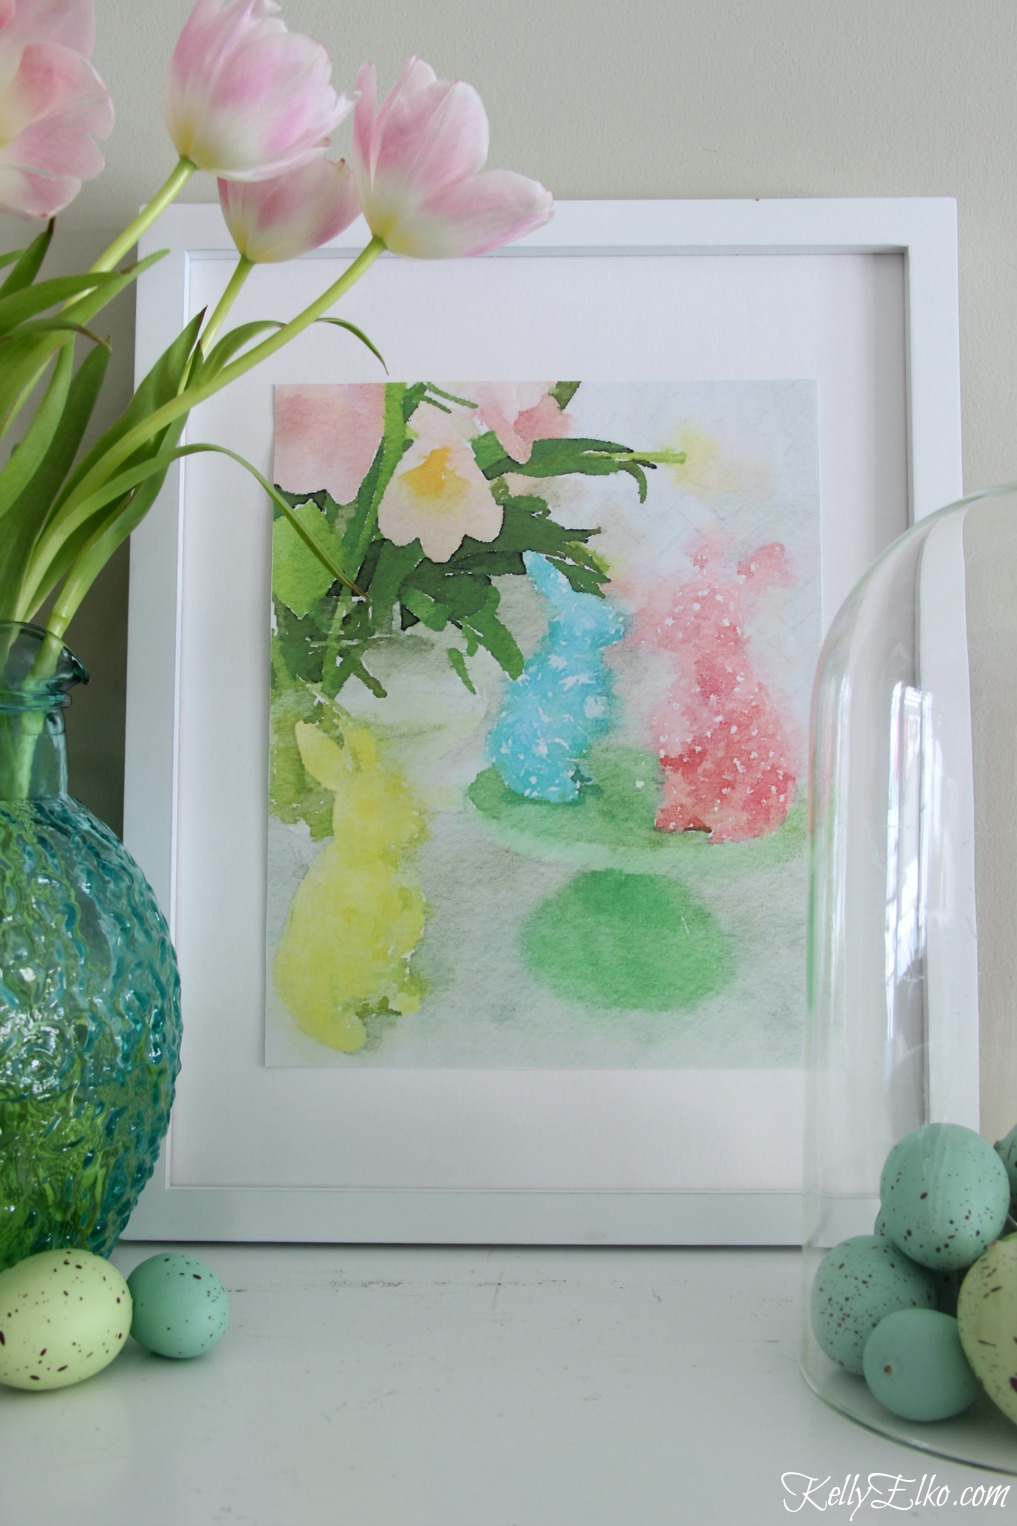 Free Printables for Spring including this adorable watercolor bunnies printable kellyelko.com